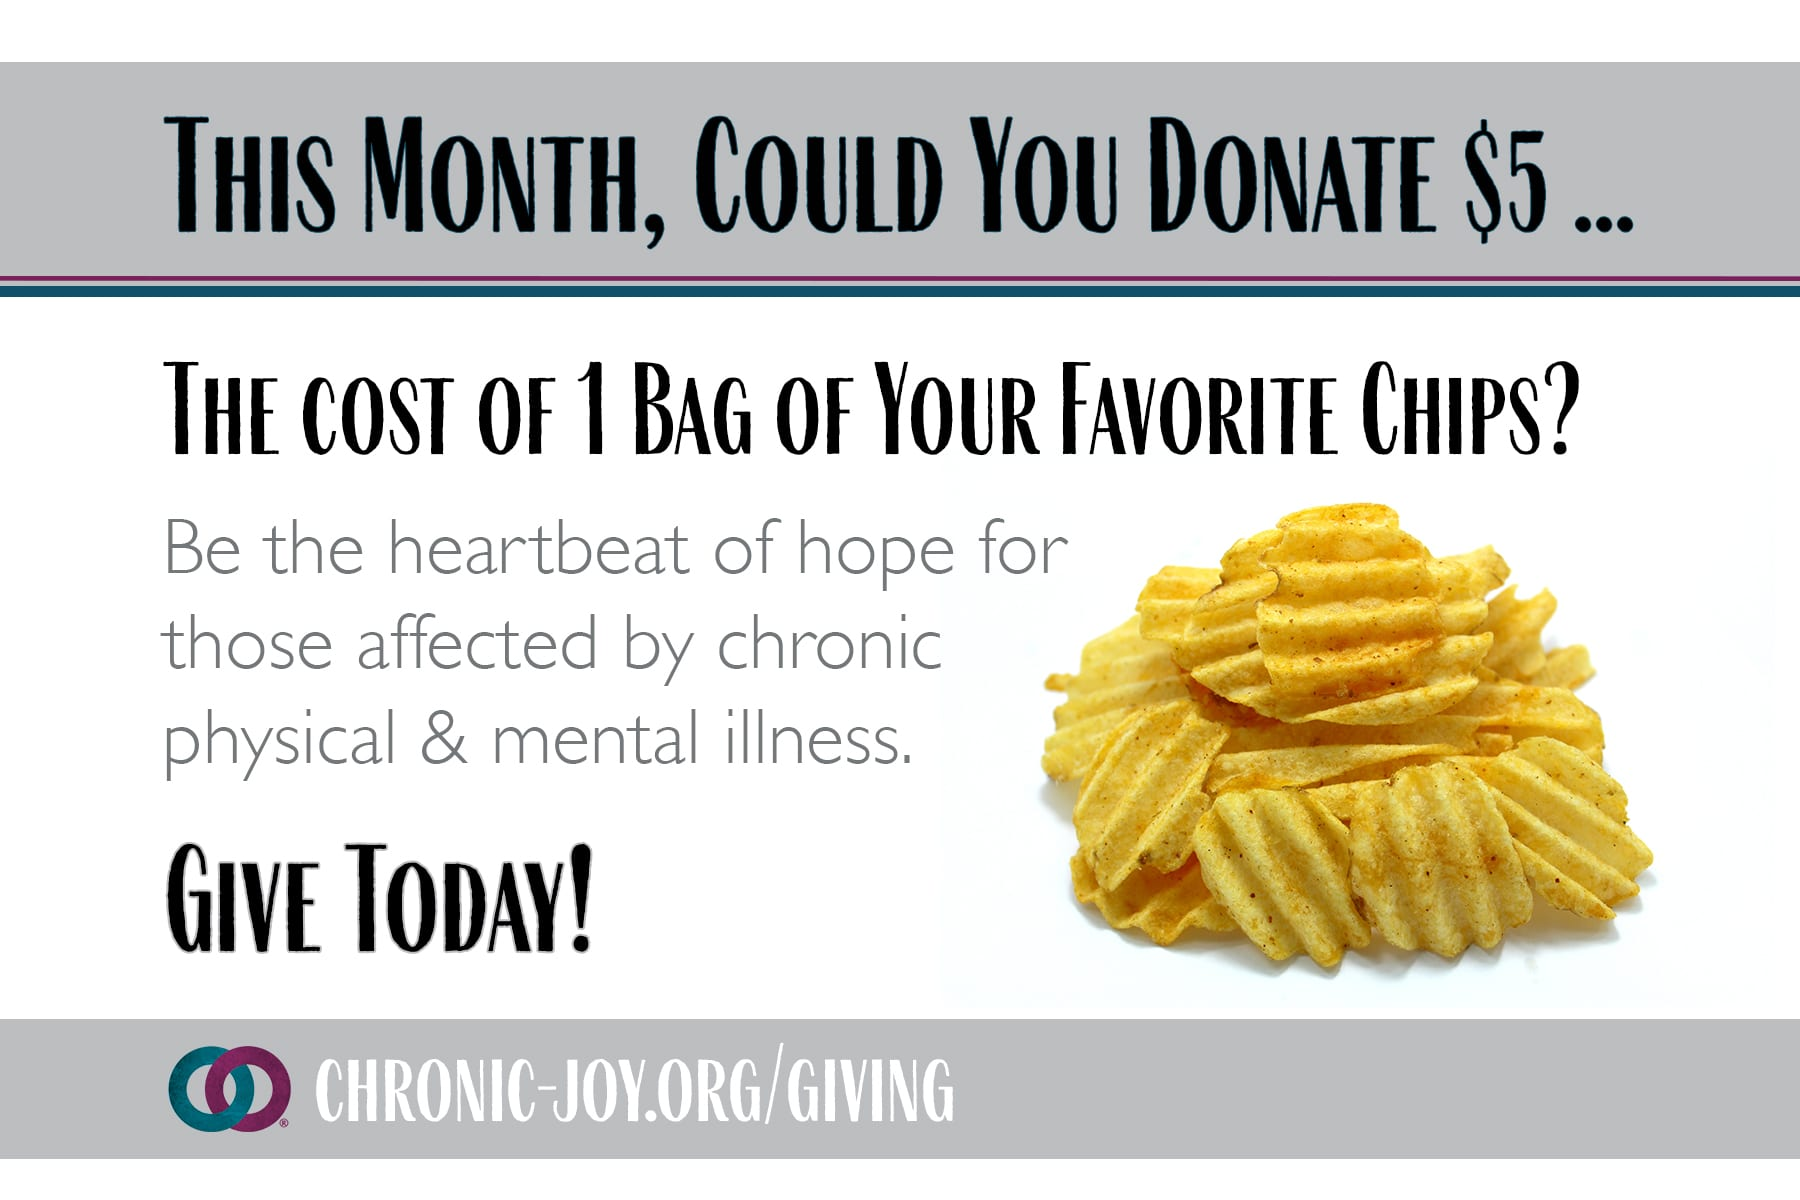 This month, could you donate $5 ... The Cost of 1 Bag of Your Favorite Chips?